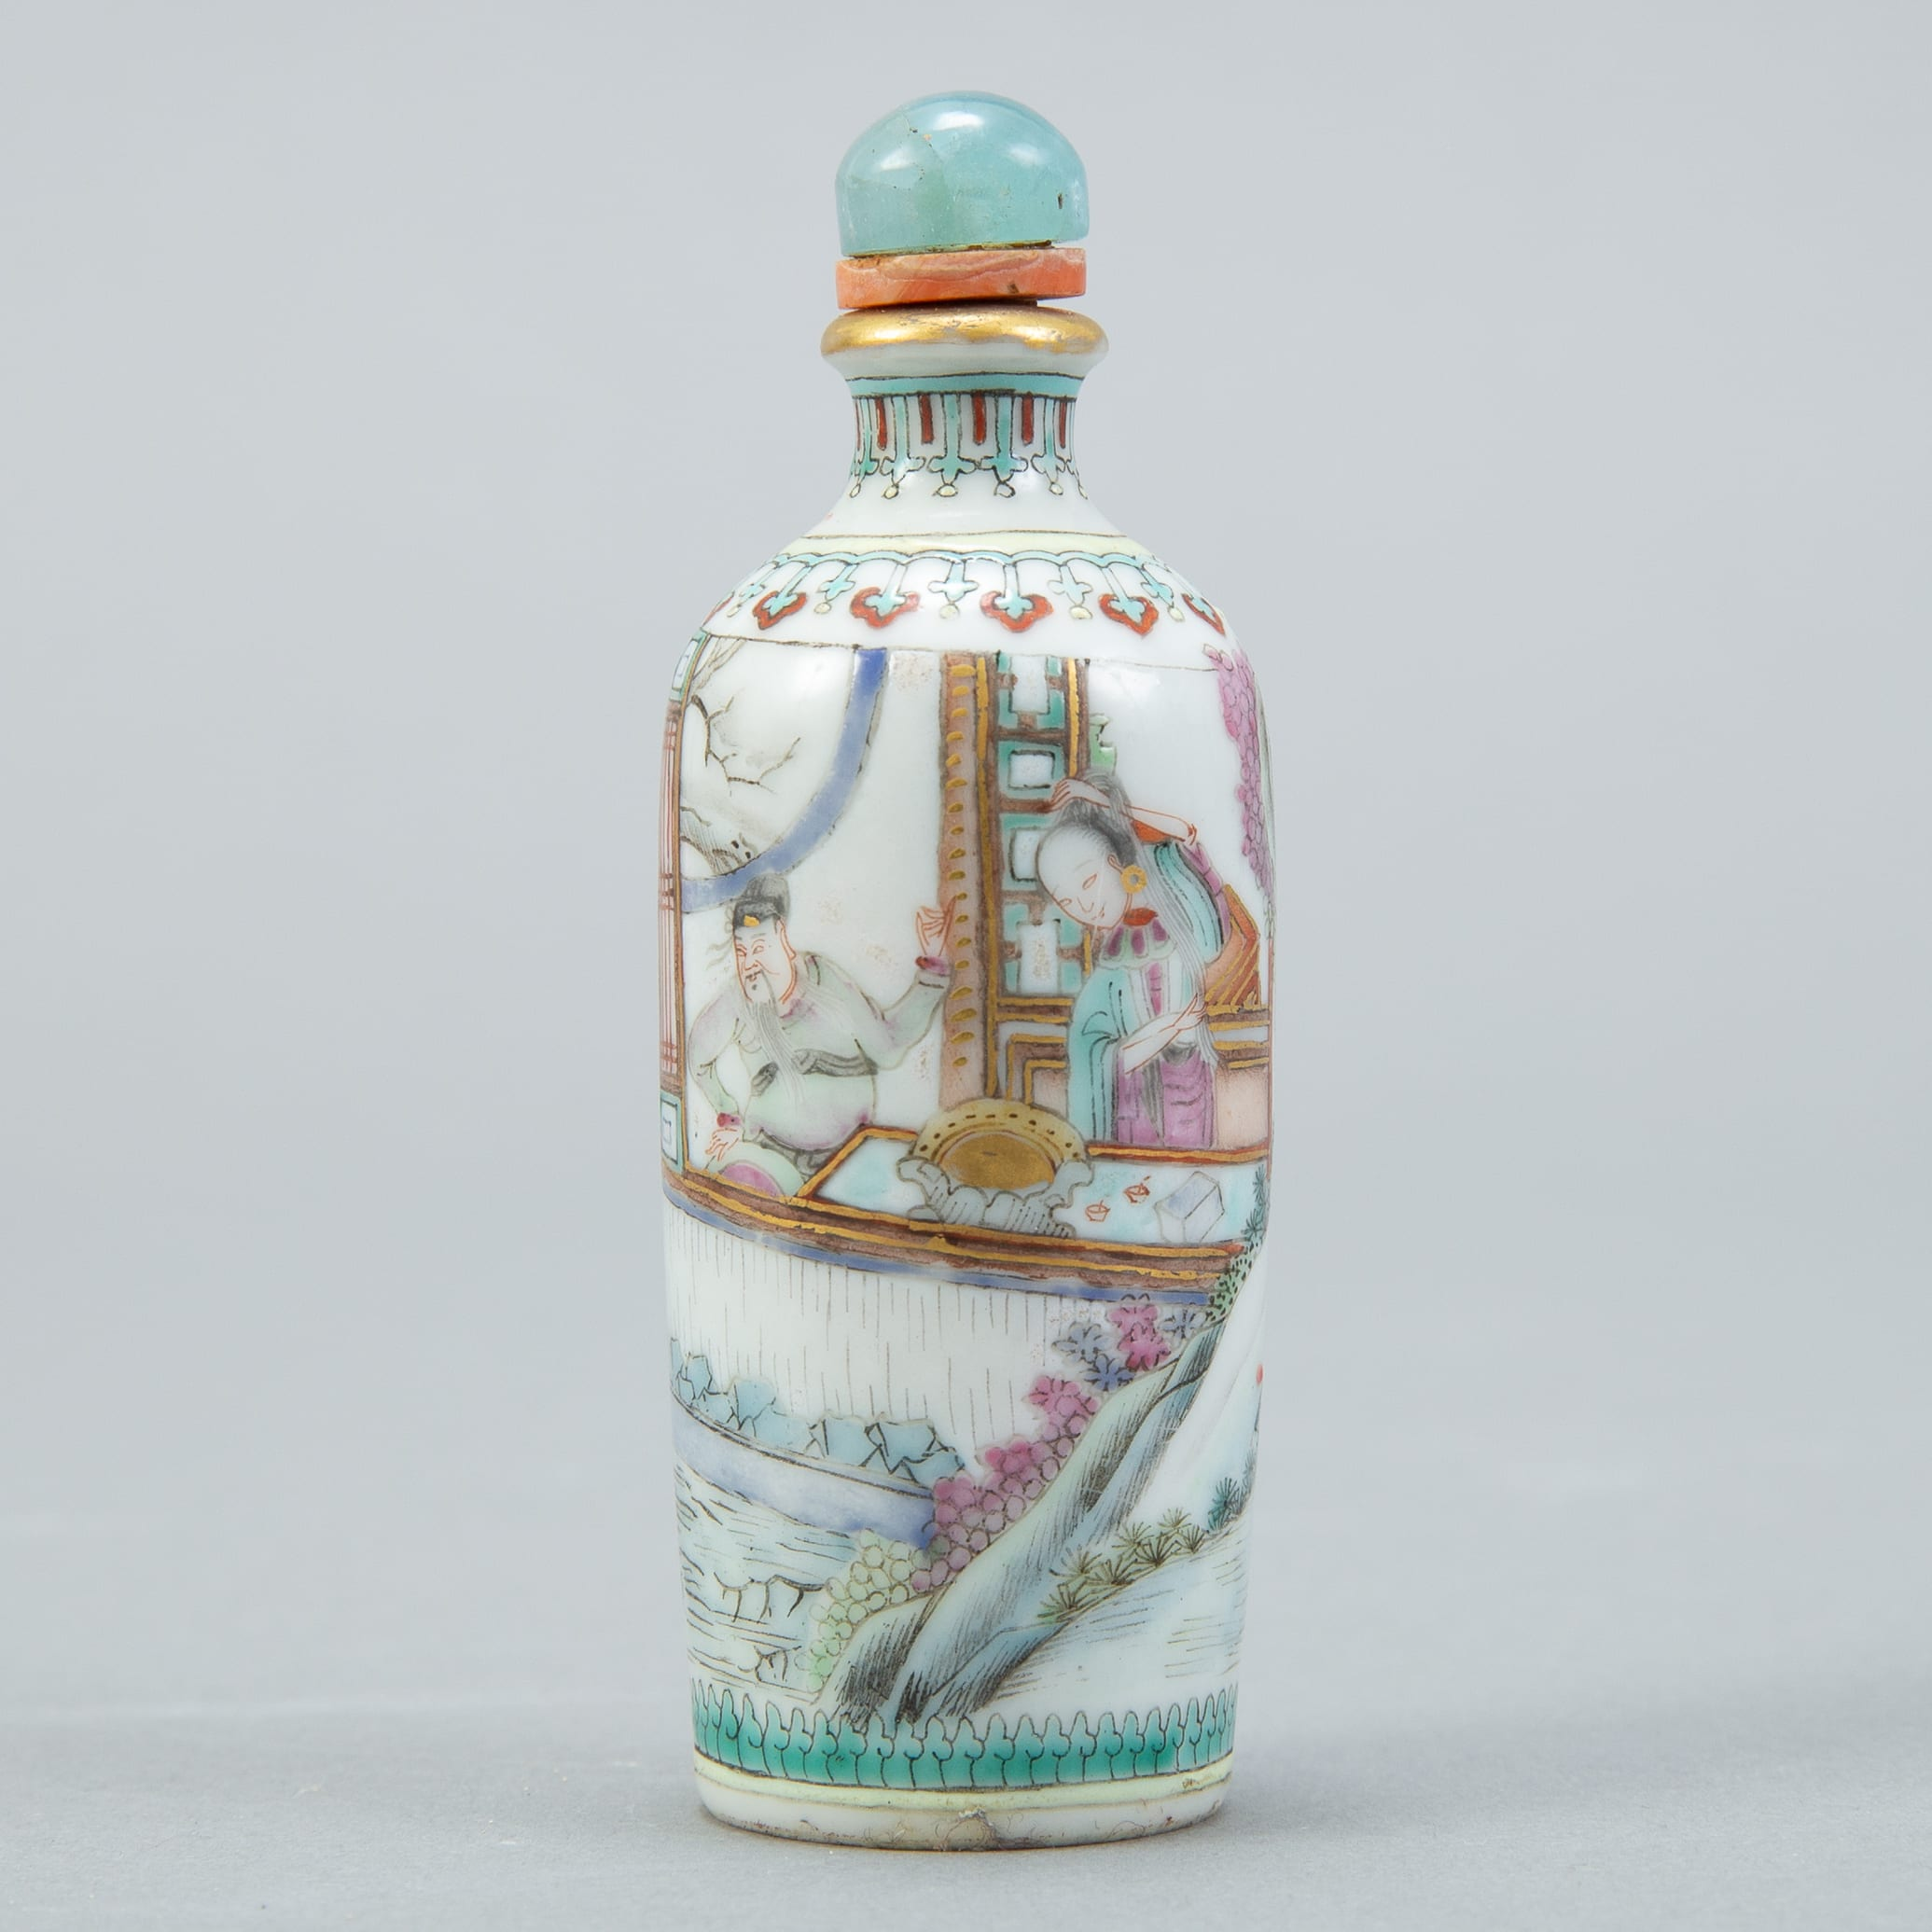 Lot 222: Chinese Qing Famille Rose Snuff Bottle - Marked